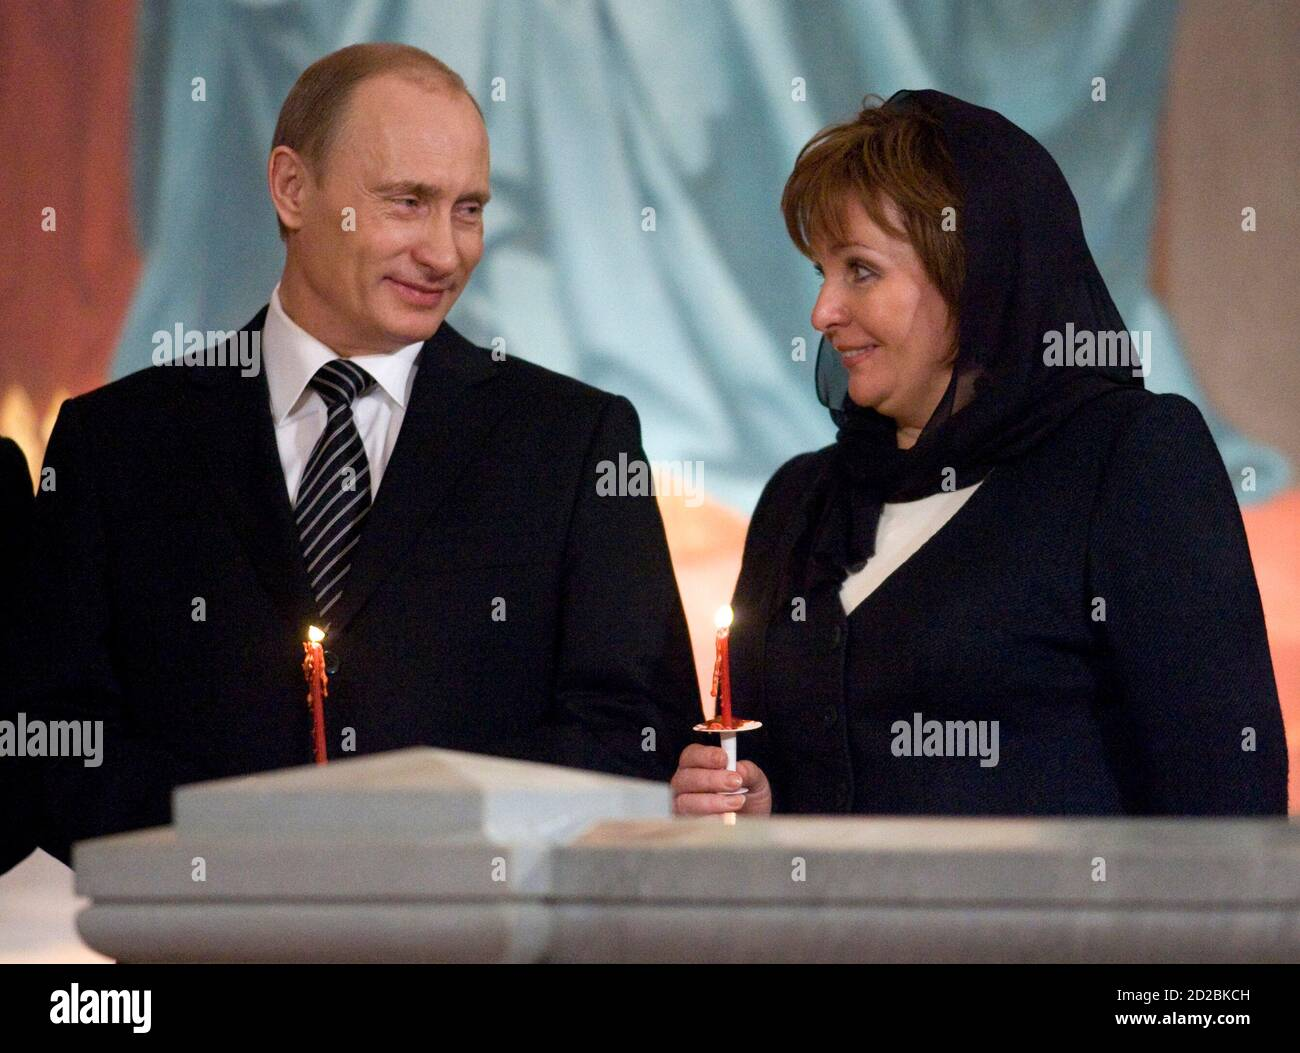 Russia President Vladimir Putin Wife High Resolution Stock Photography And Images Alamy